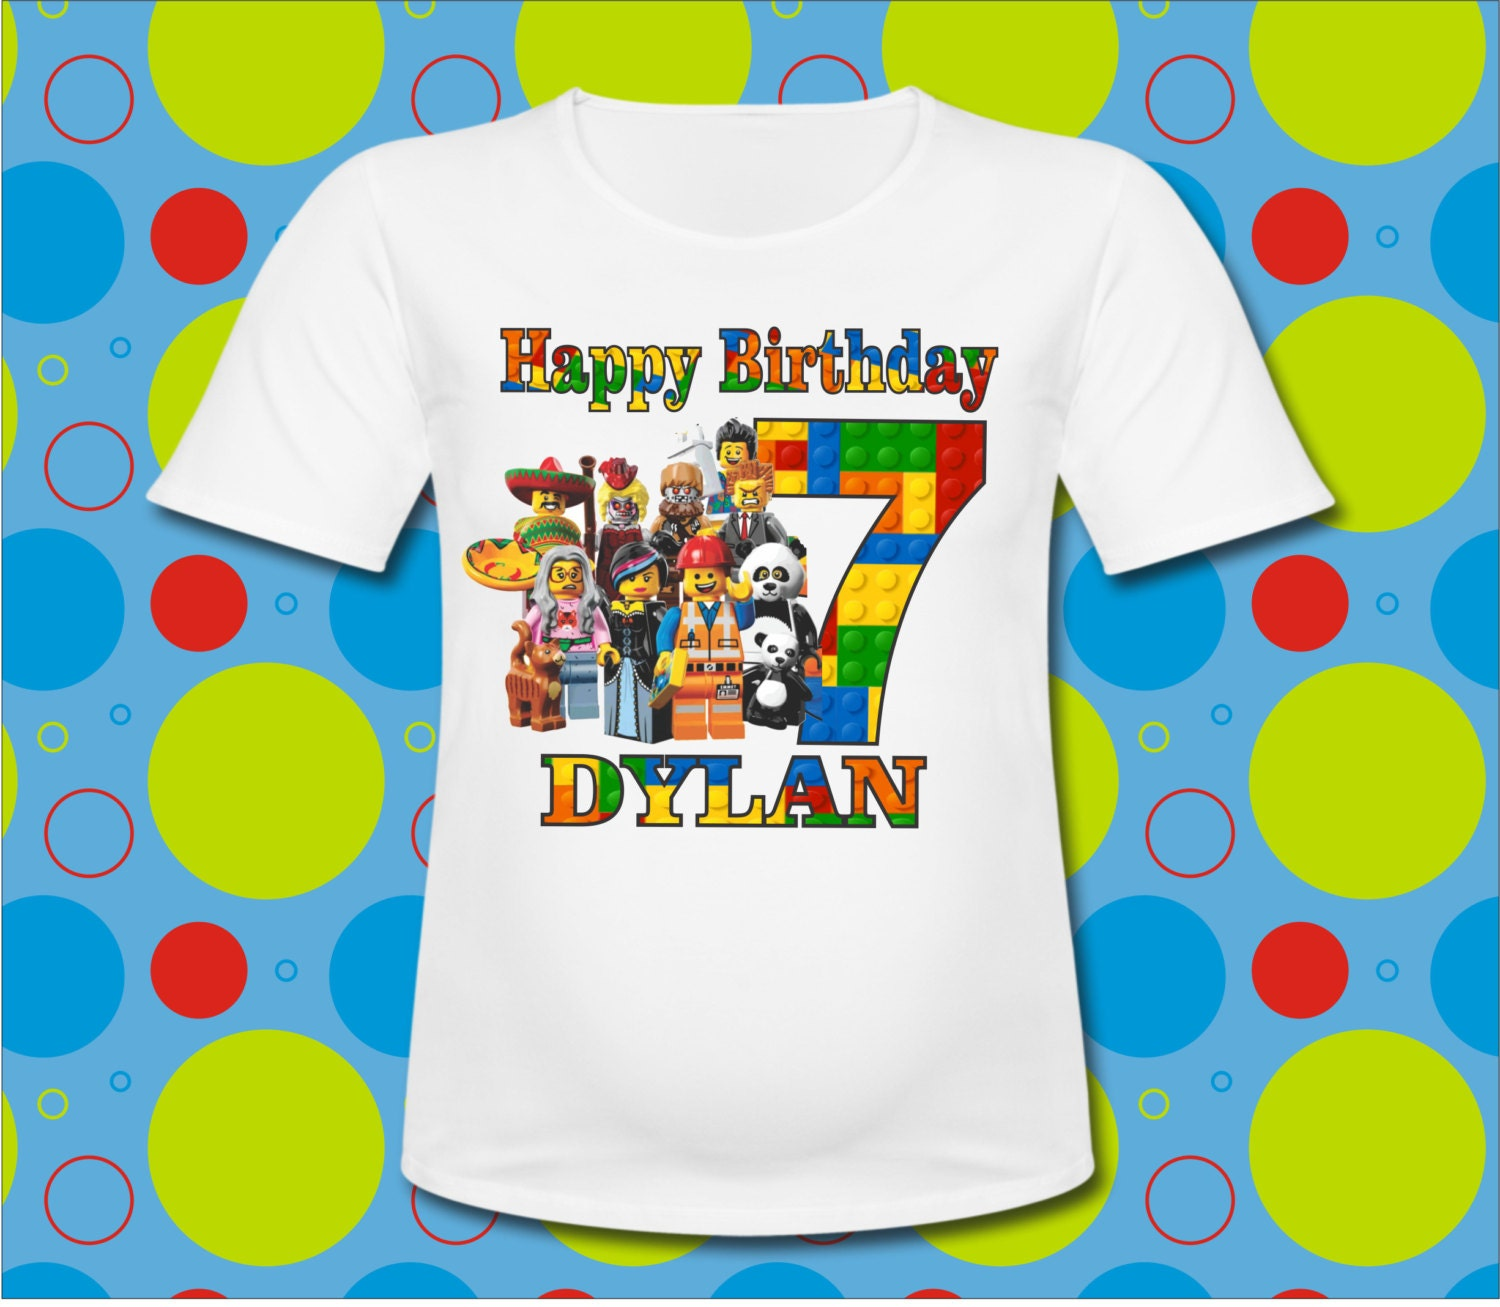 Personalized Happy Birthday Lego Characters T Shirt All SIZES